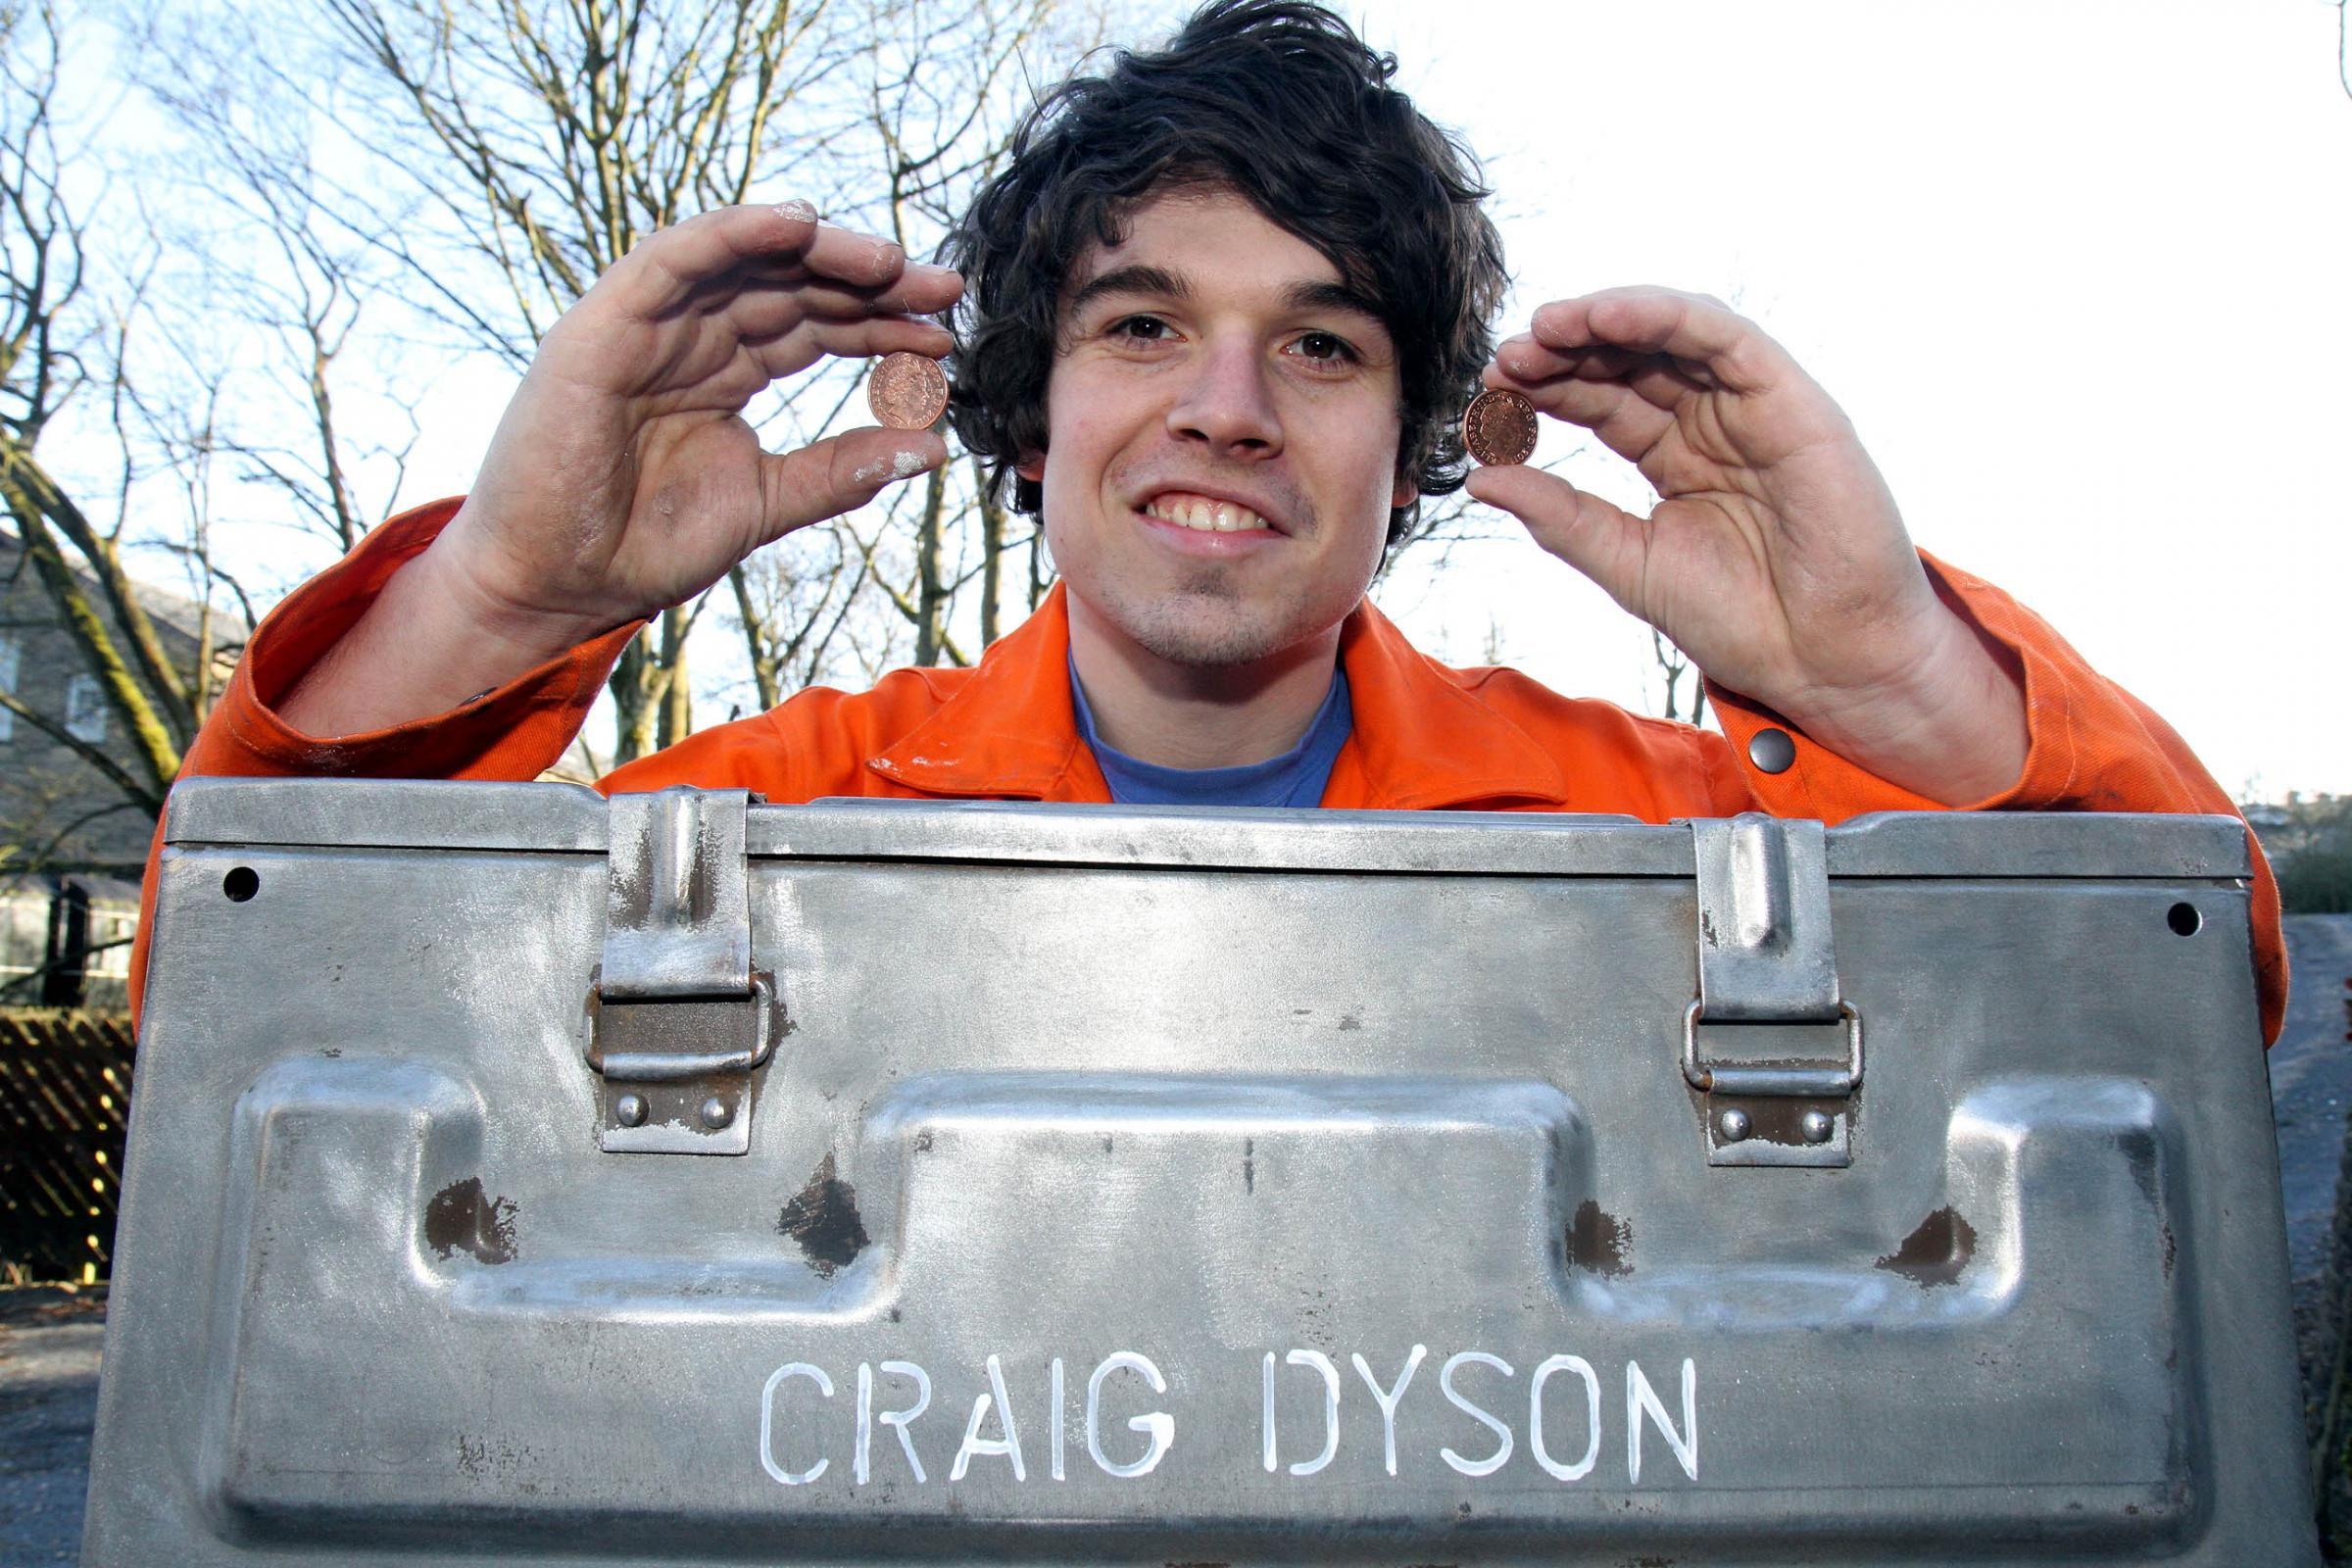 Haworth sculptor, Craig Dyson, who is appealing for funding to create a Tour-themed sculpture